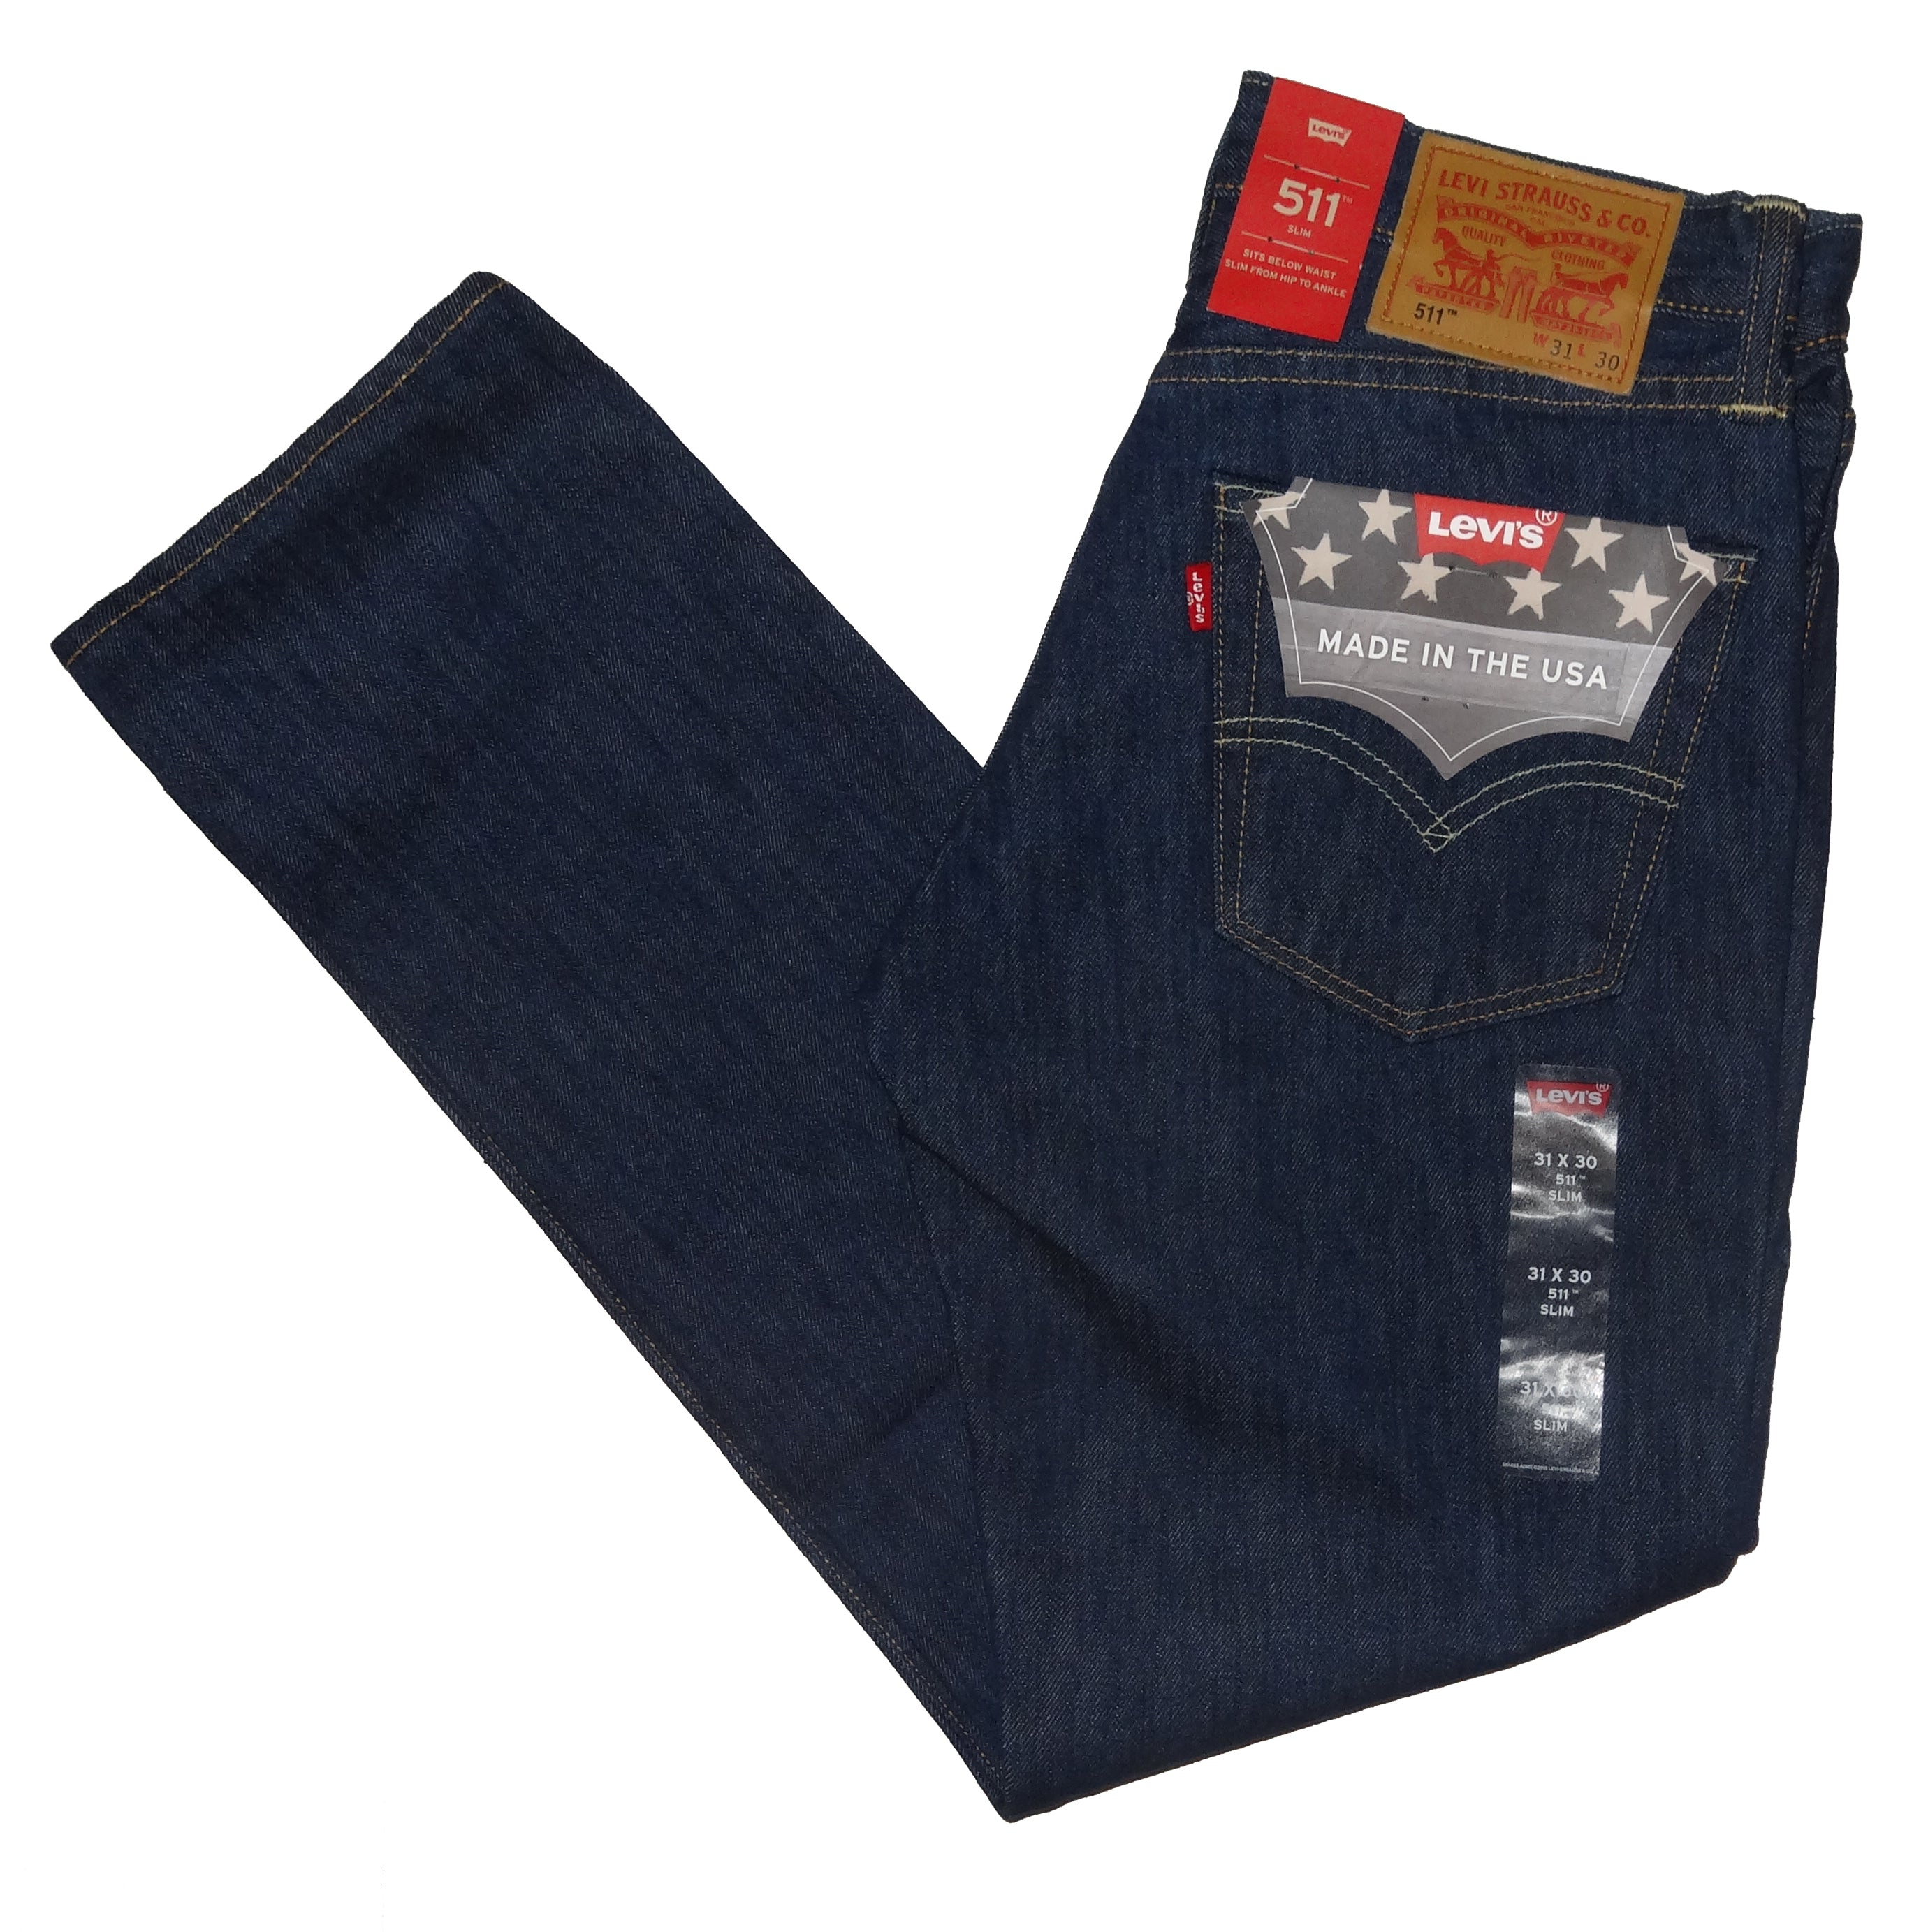 888fe9e90e3 LEVIS 511 SLIM FIT MADE IN USA PREMIUM WHITE OAK CONE DENIM JEANS ...